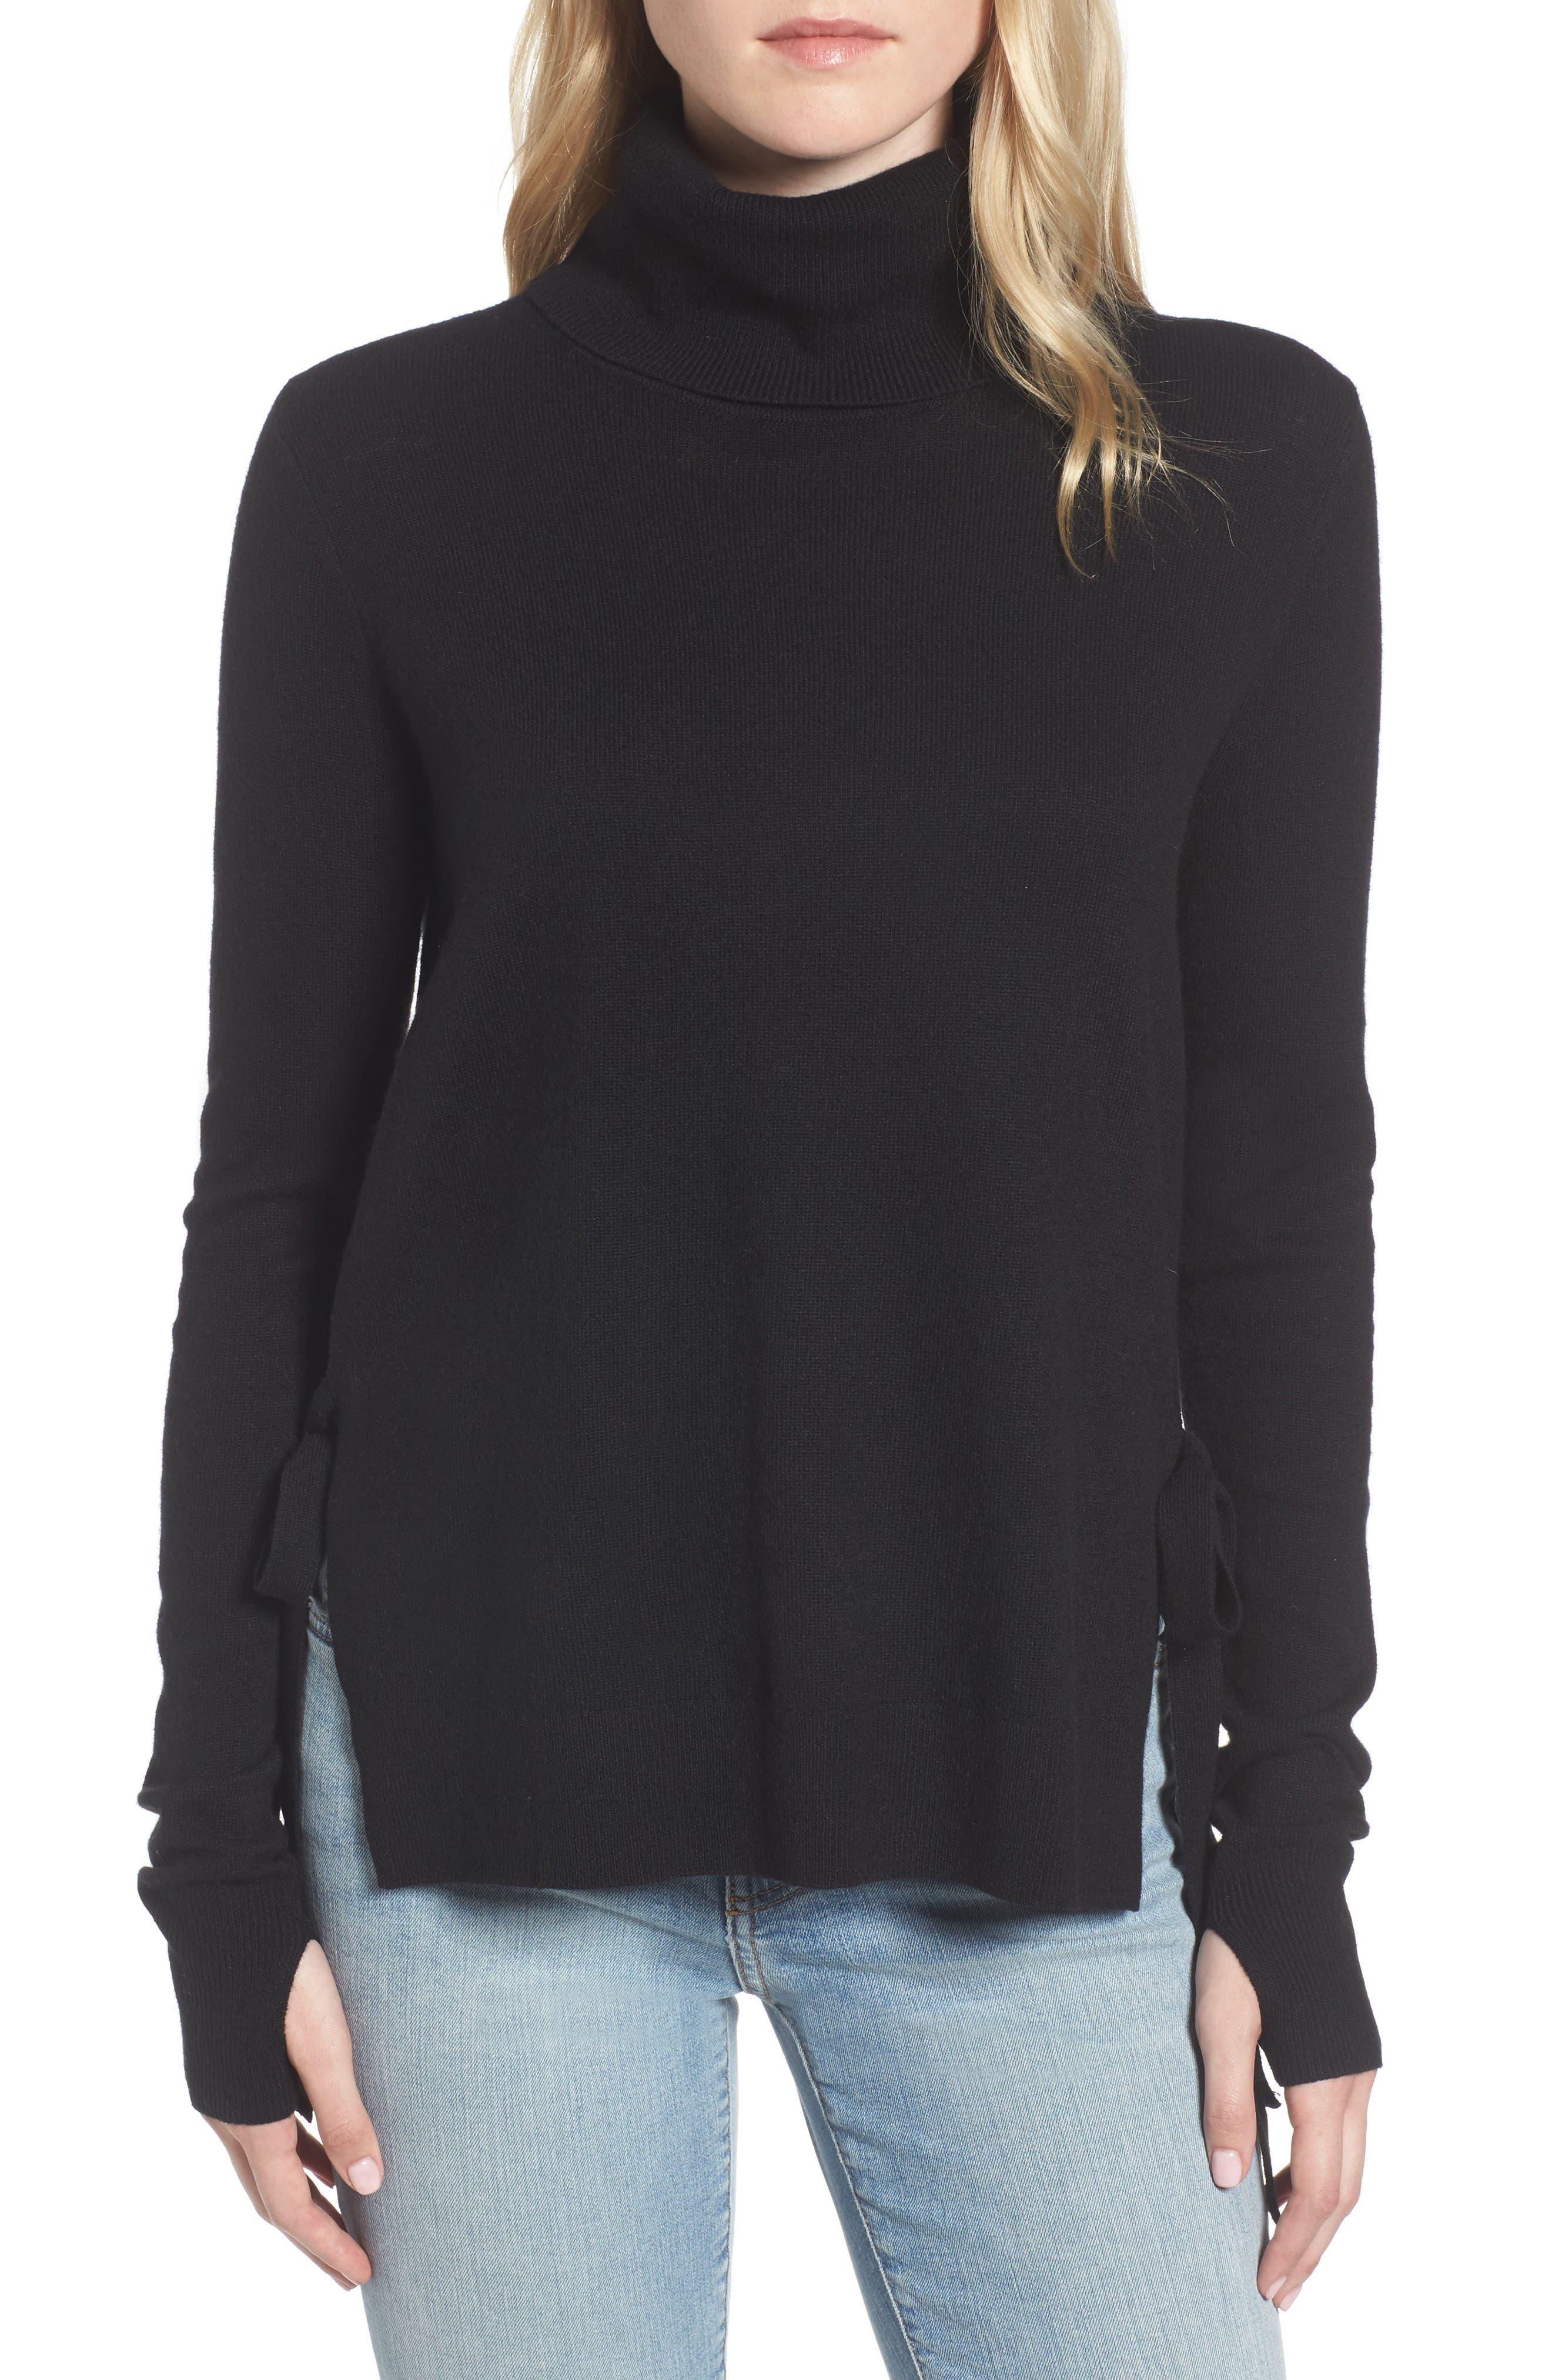 Main Image - Pam & Gela Distressed Turtleneck Sweater